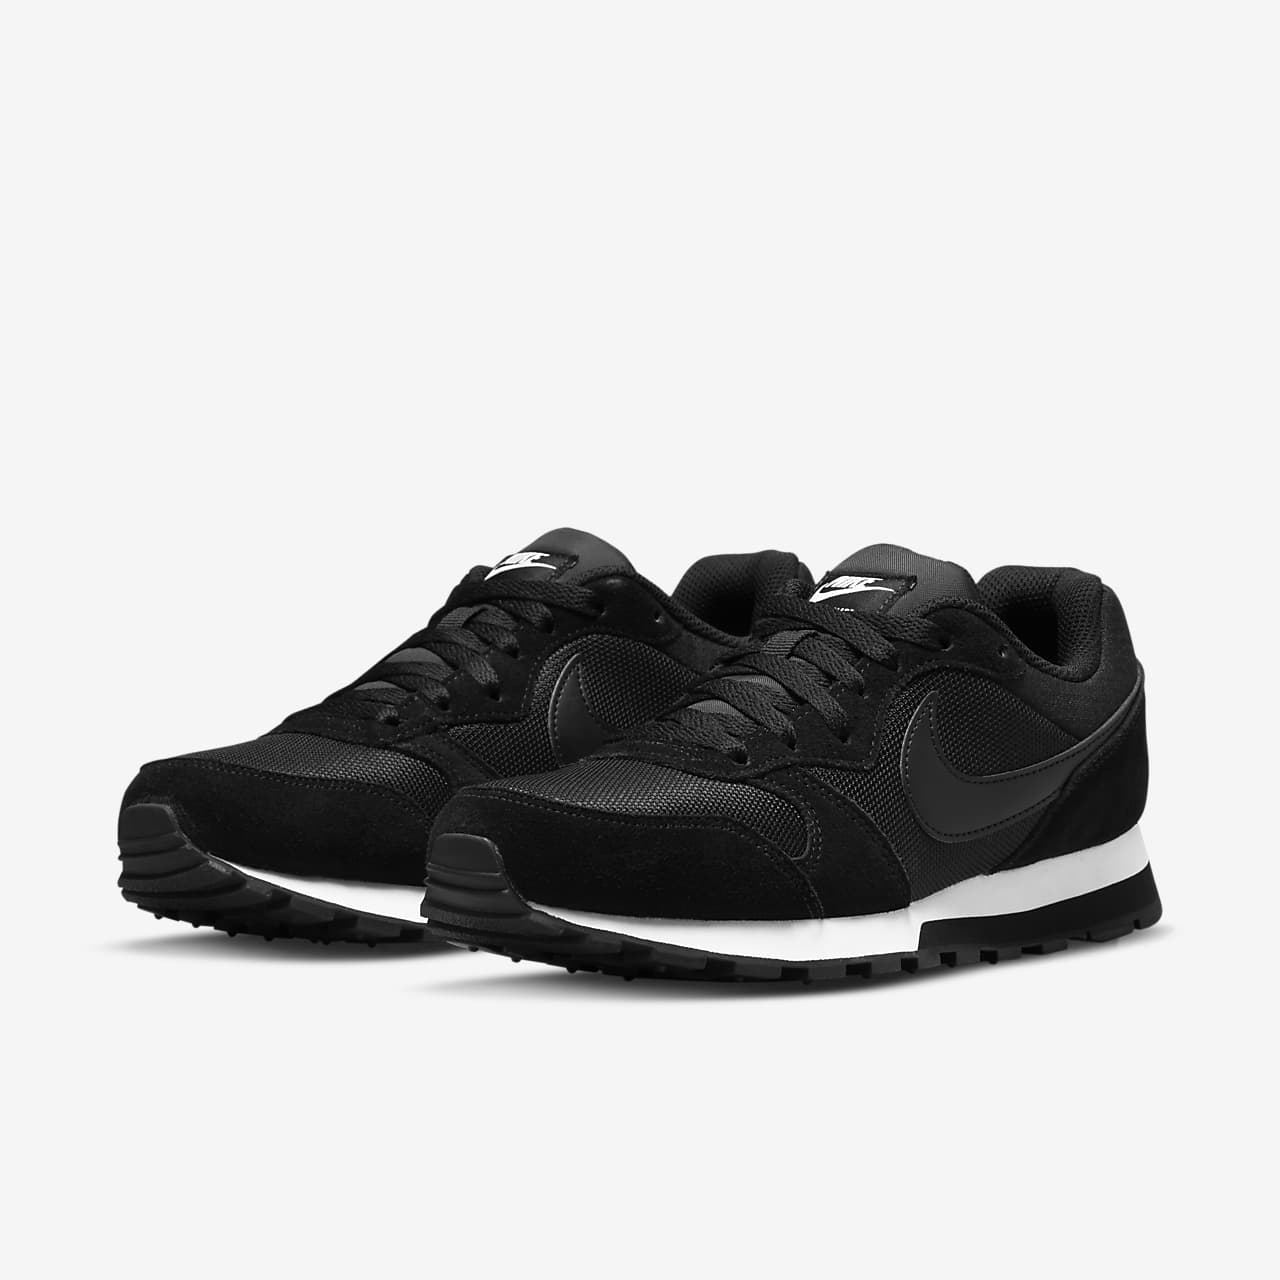 77336ac833 Low Resolution Nike MD Runner 2 Women's Shoe Nike MD Runner 2 Women's Shoe